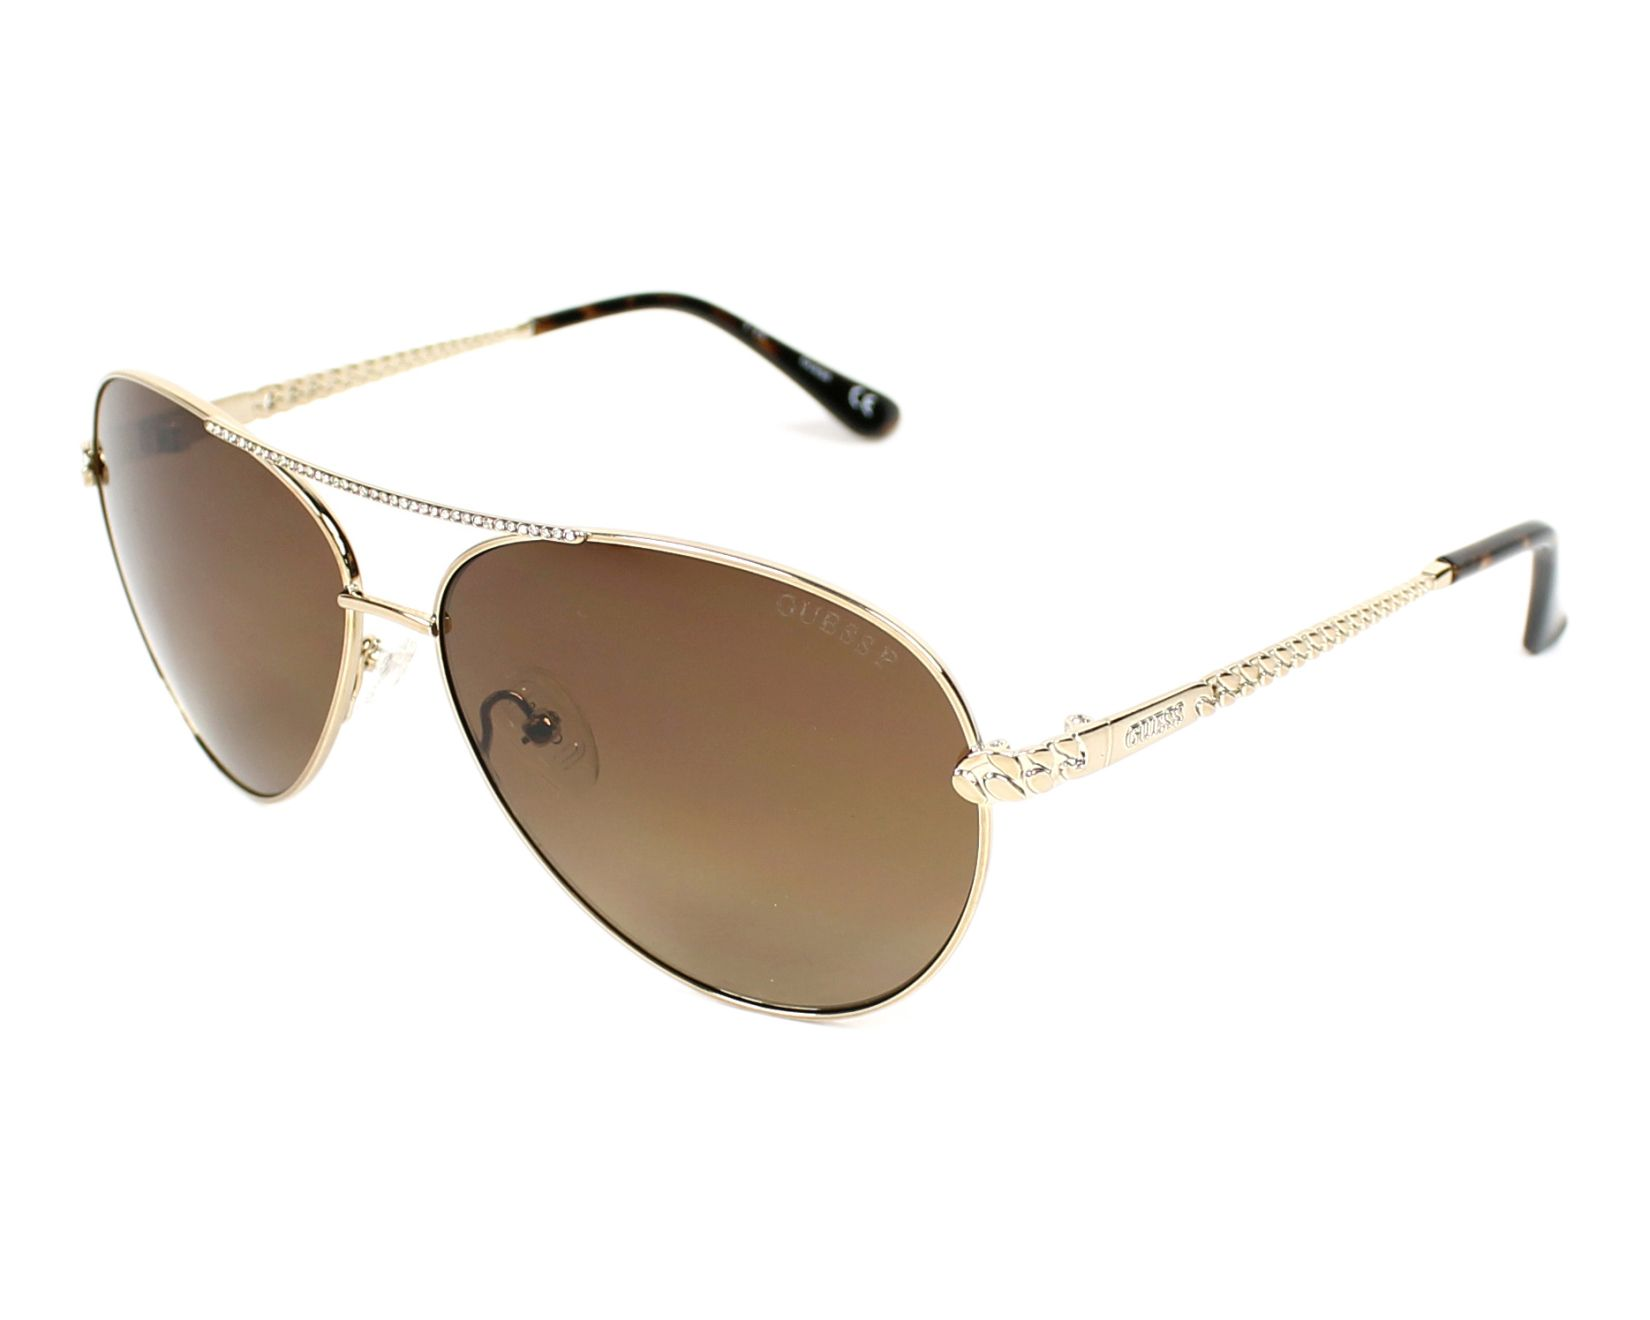 Sunglasses Guess GU-7470-S 32H 60-13 Gold profile view 8aa4f26e7095